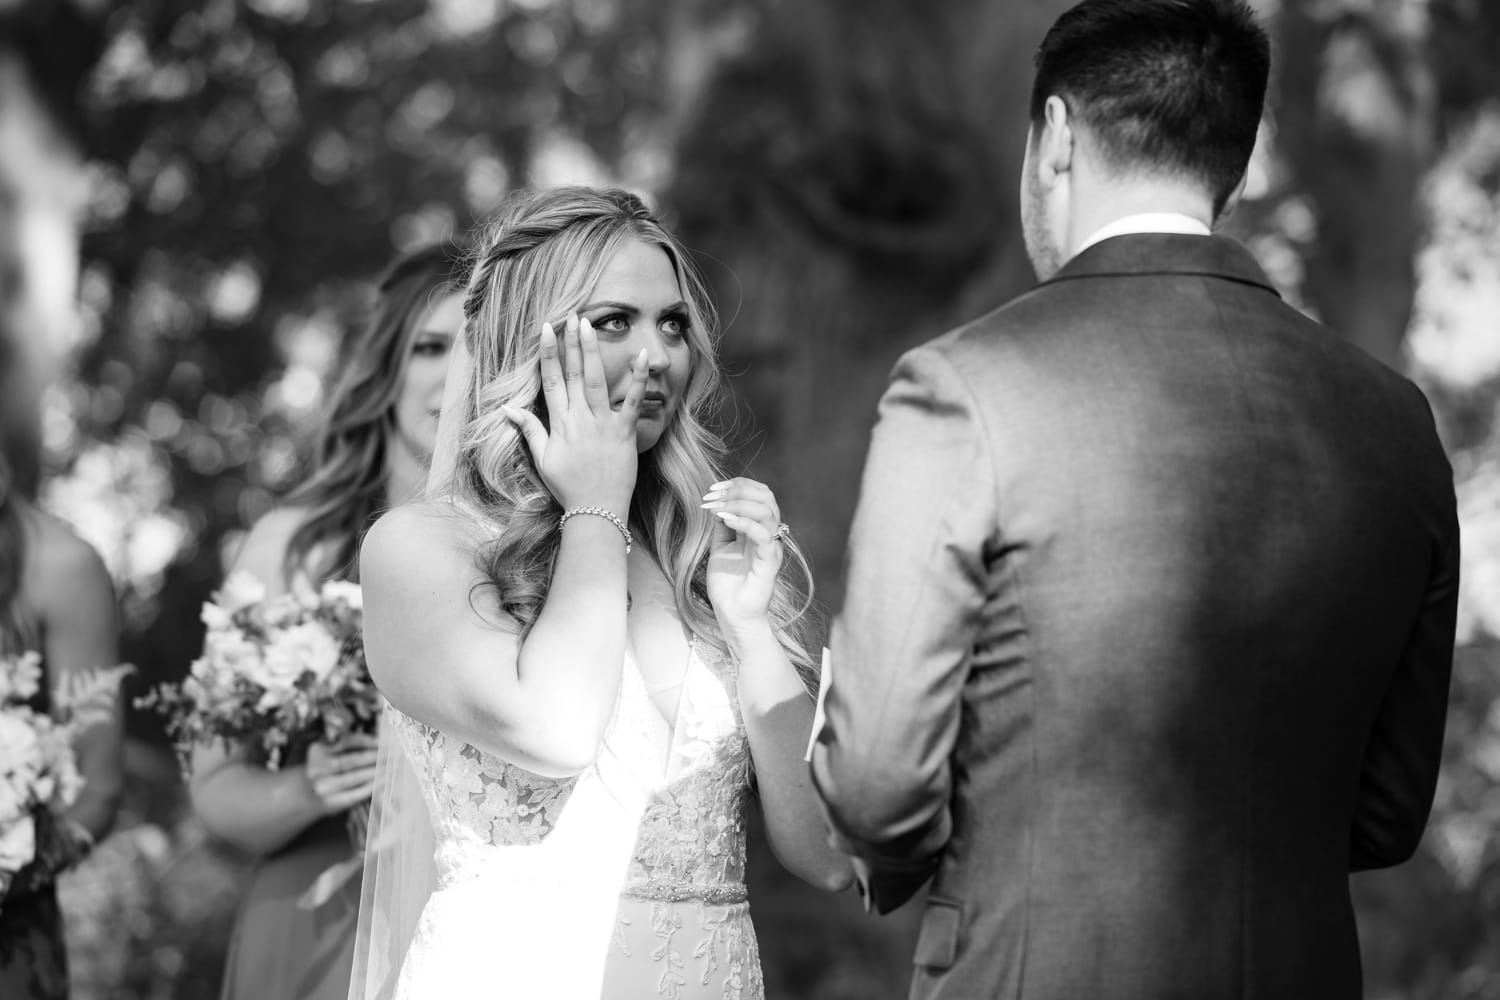 Wedding ceremony at The Stone House in Temecula, CA